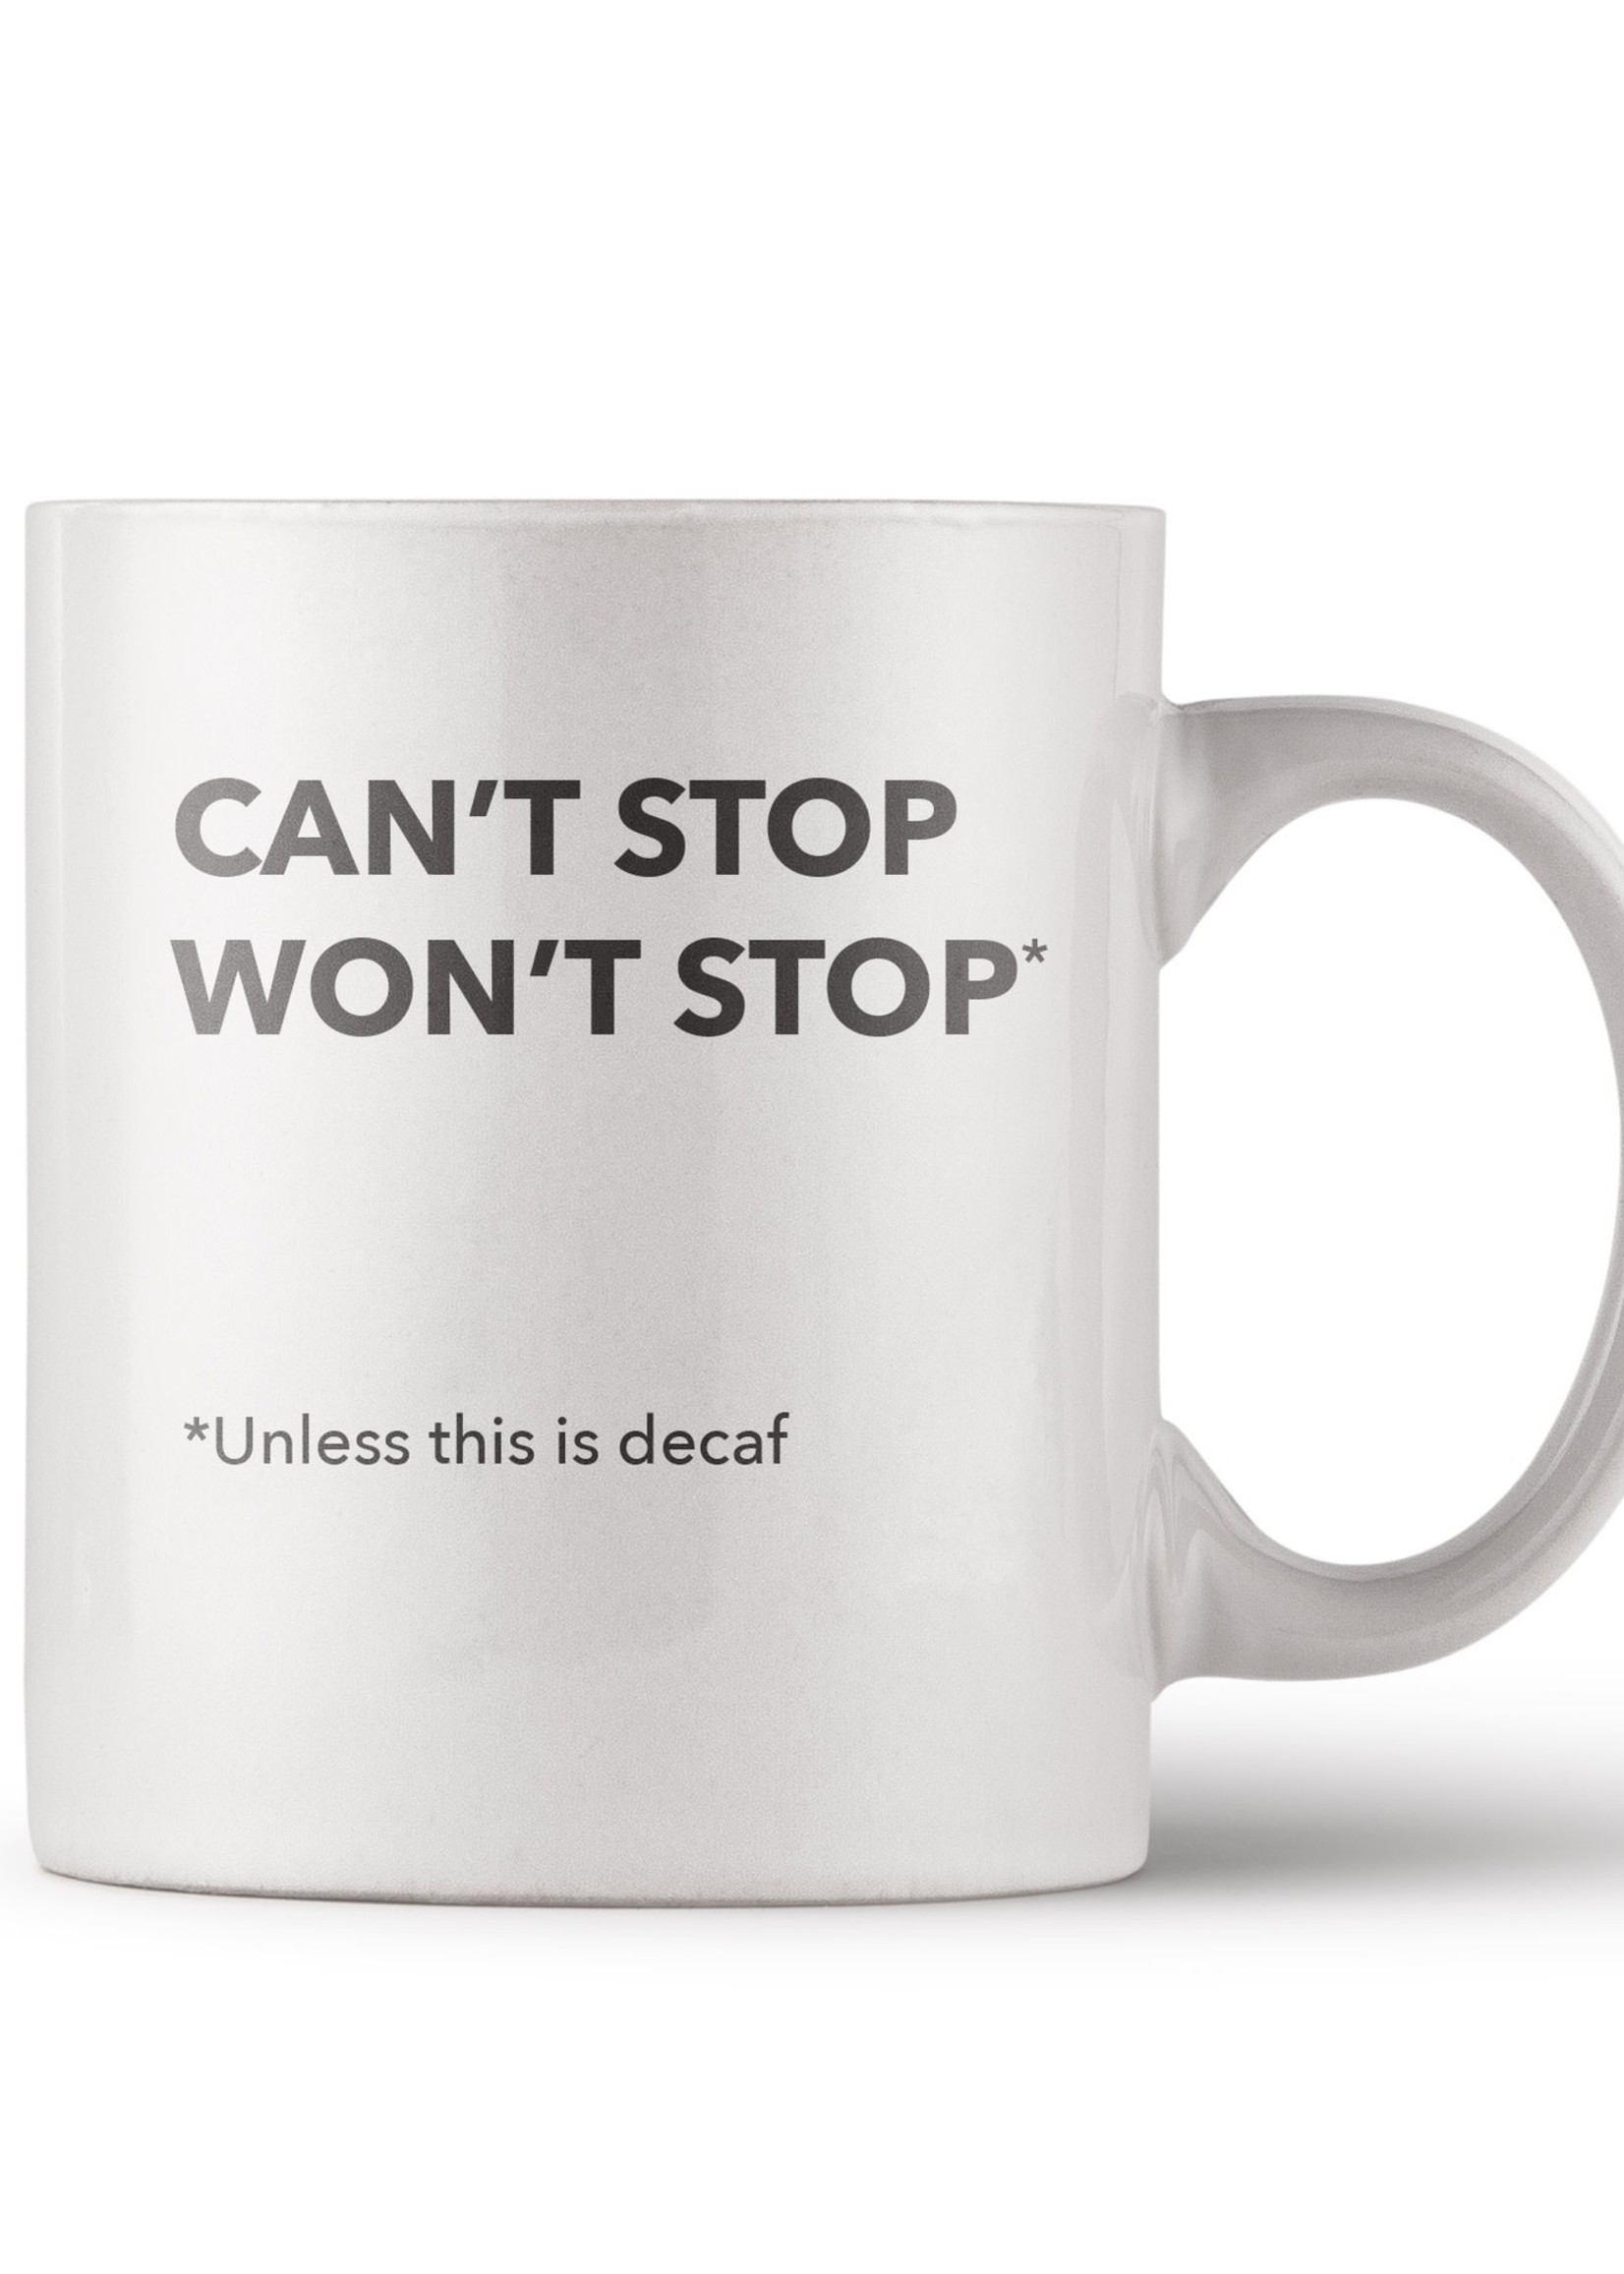 PRETTY ALRIGHT GOODS CAN'T STOP WON'T STOP MUG